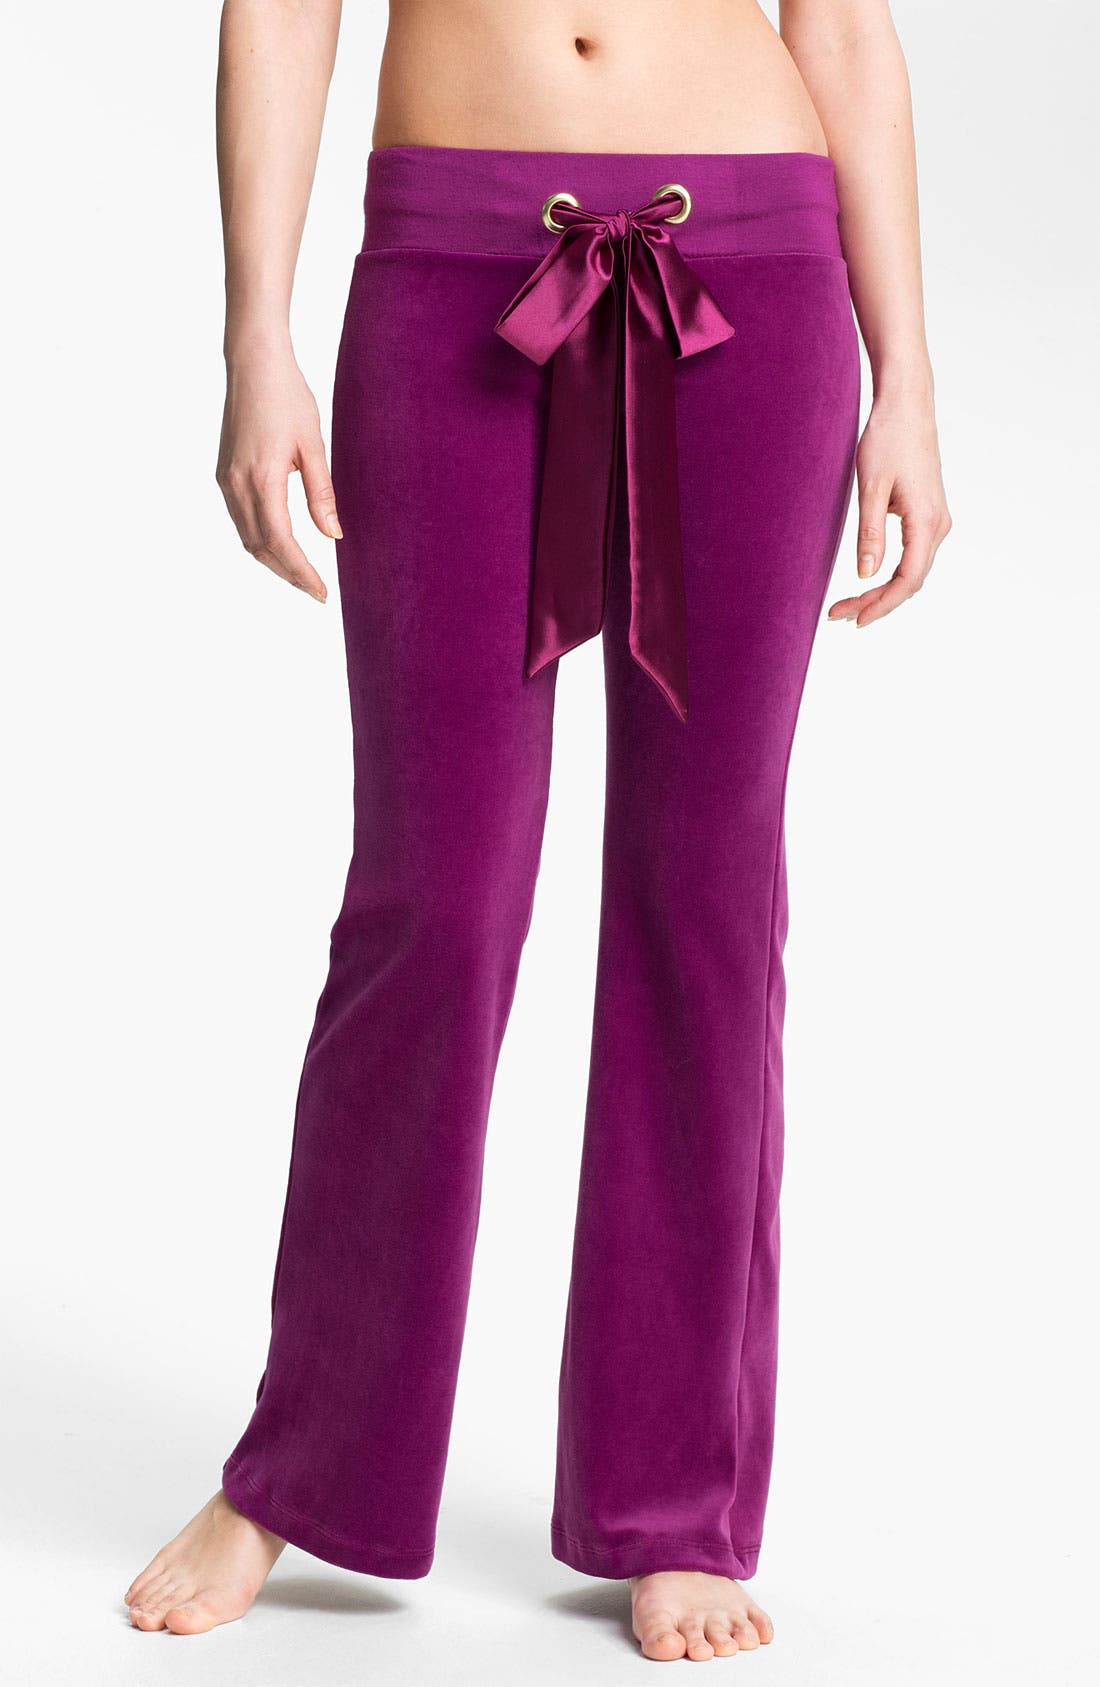 Alternate Image 1 Selected - Beach Bunny 'Winter Romance' Velour Pants